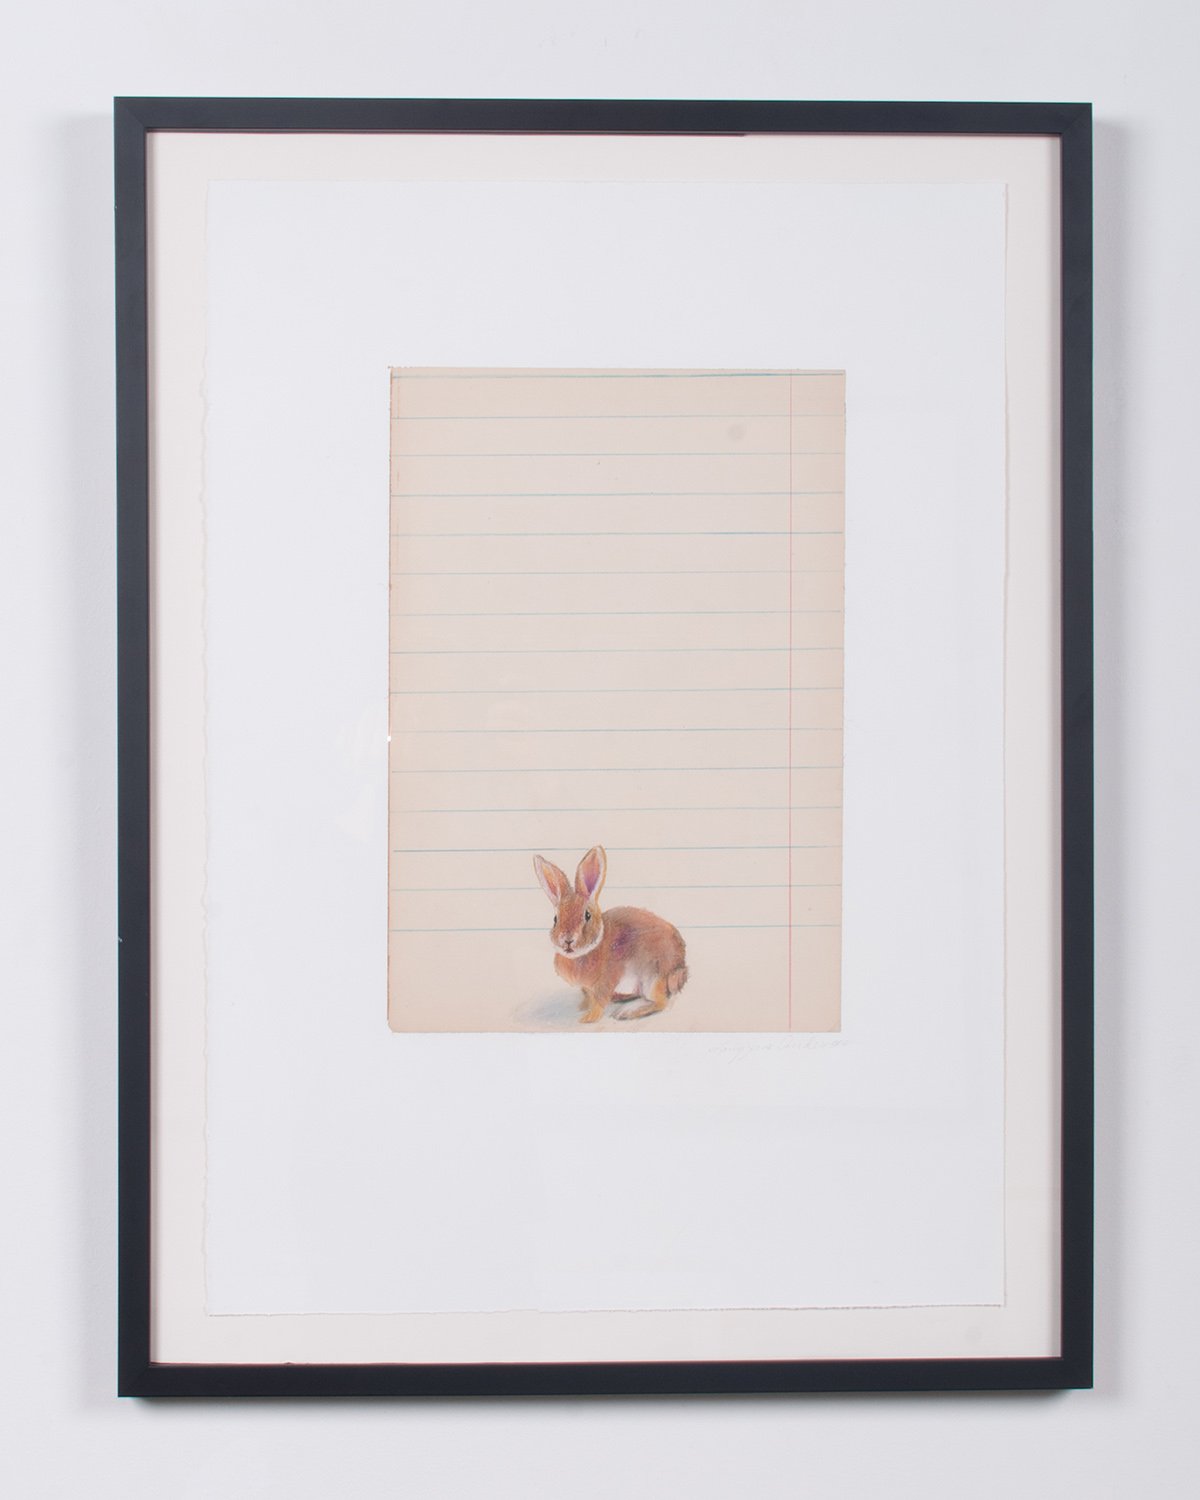 Baby Bunny prisma pencils on antiqued collaged paper 32.75 x 24.75 LJA 155G